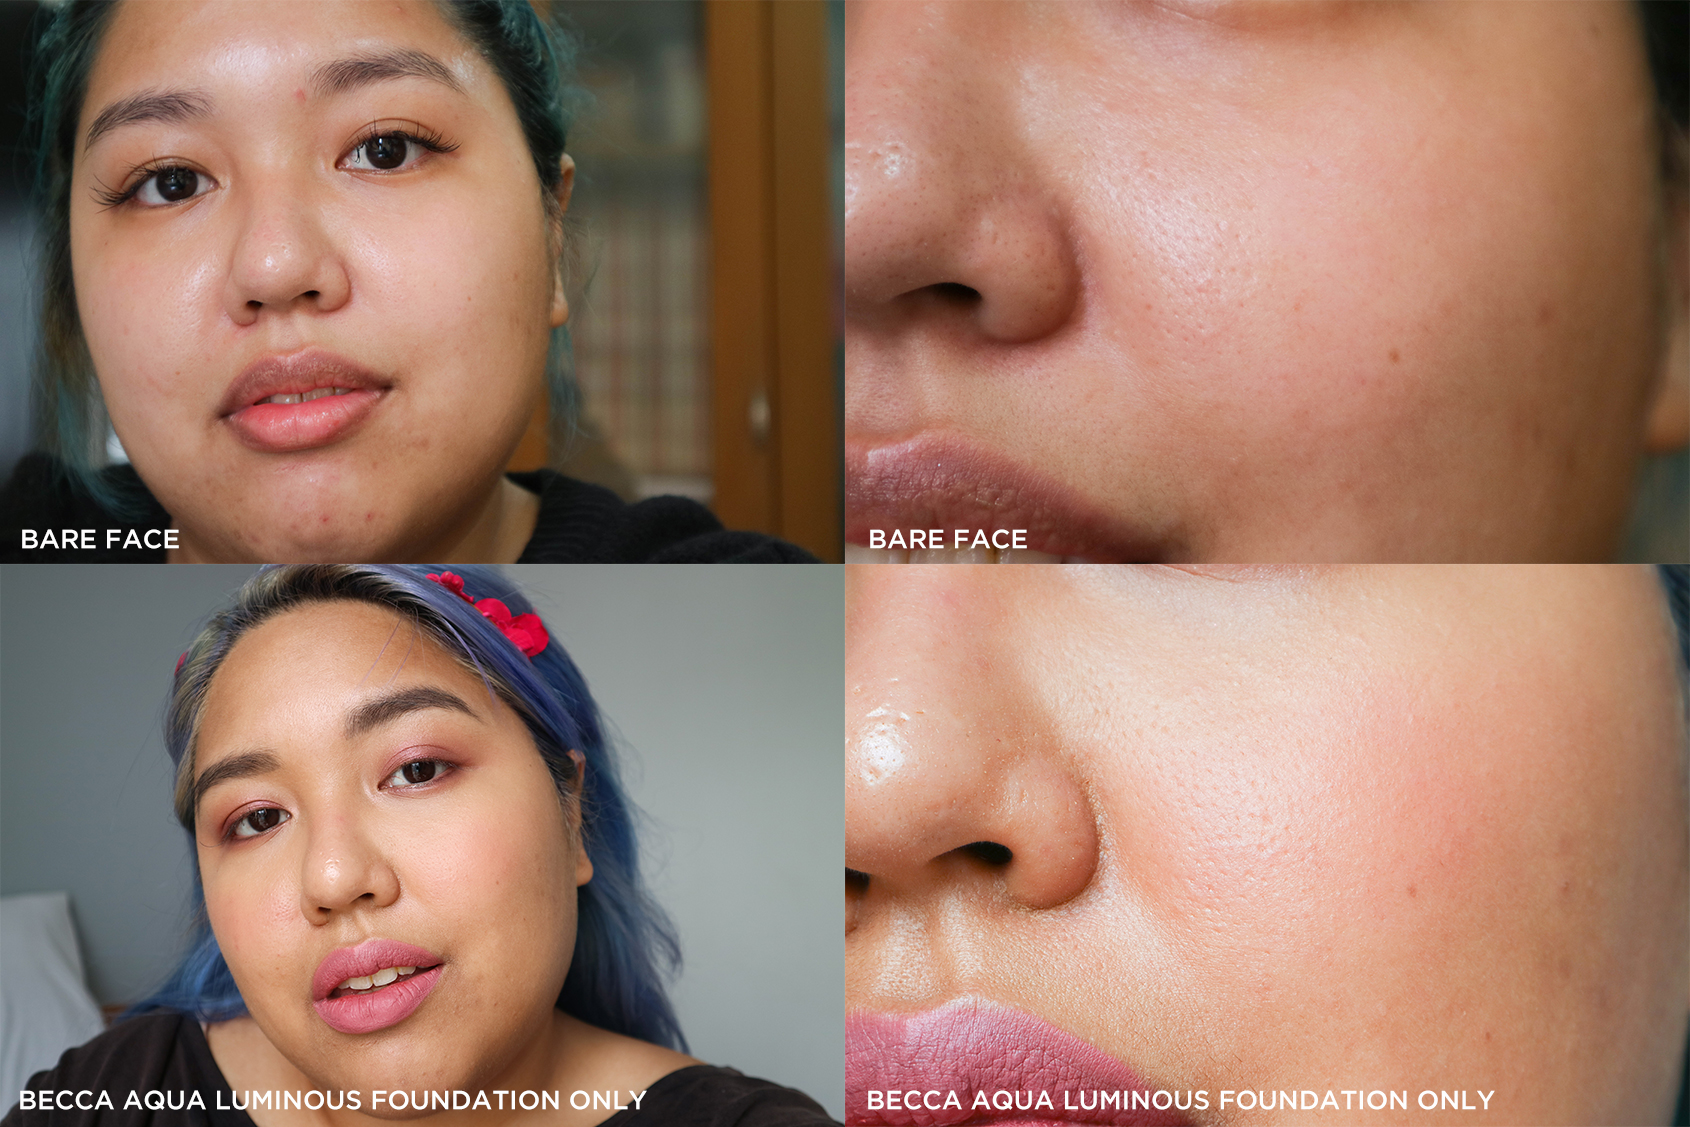 Bare-faced, and with no primers used, my pores are completely visible and the texture on my mouth area is very pronounced.